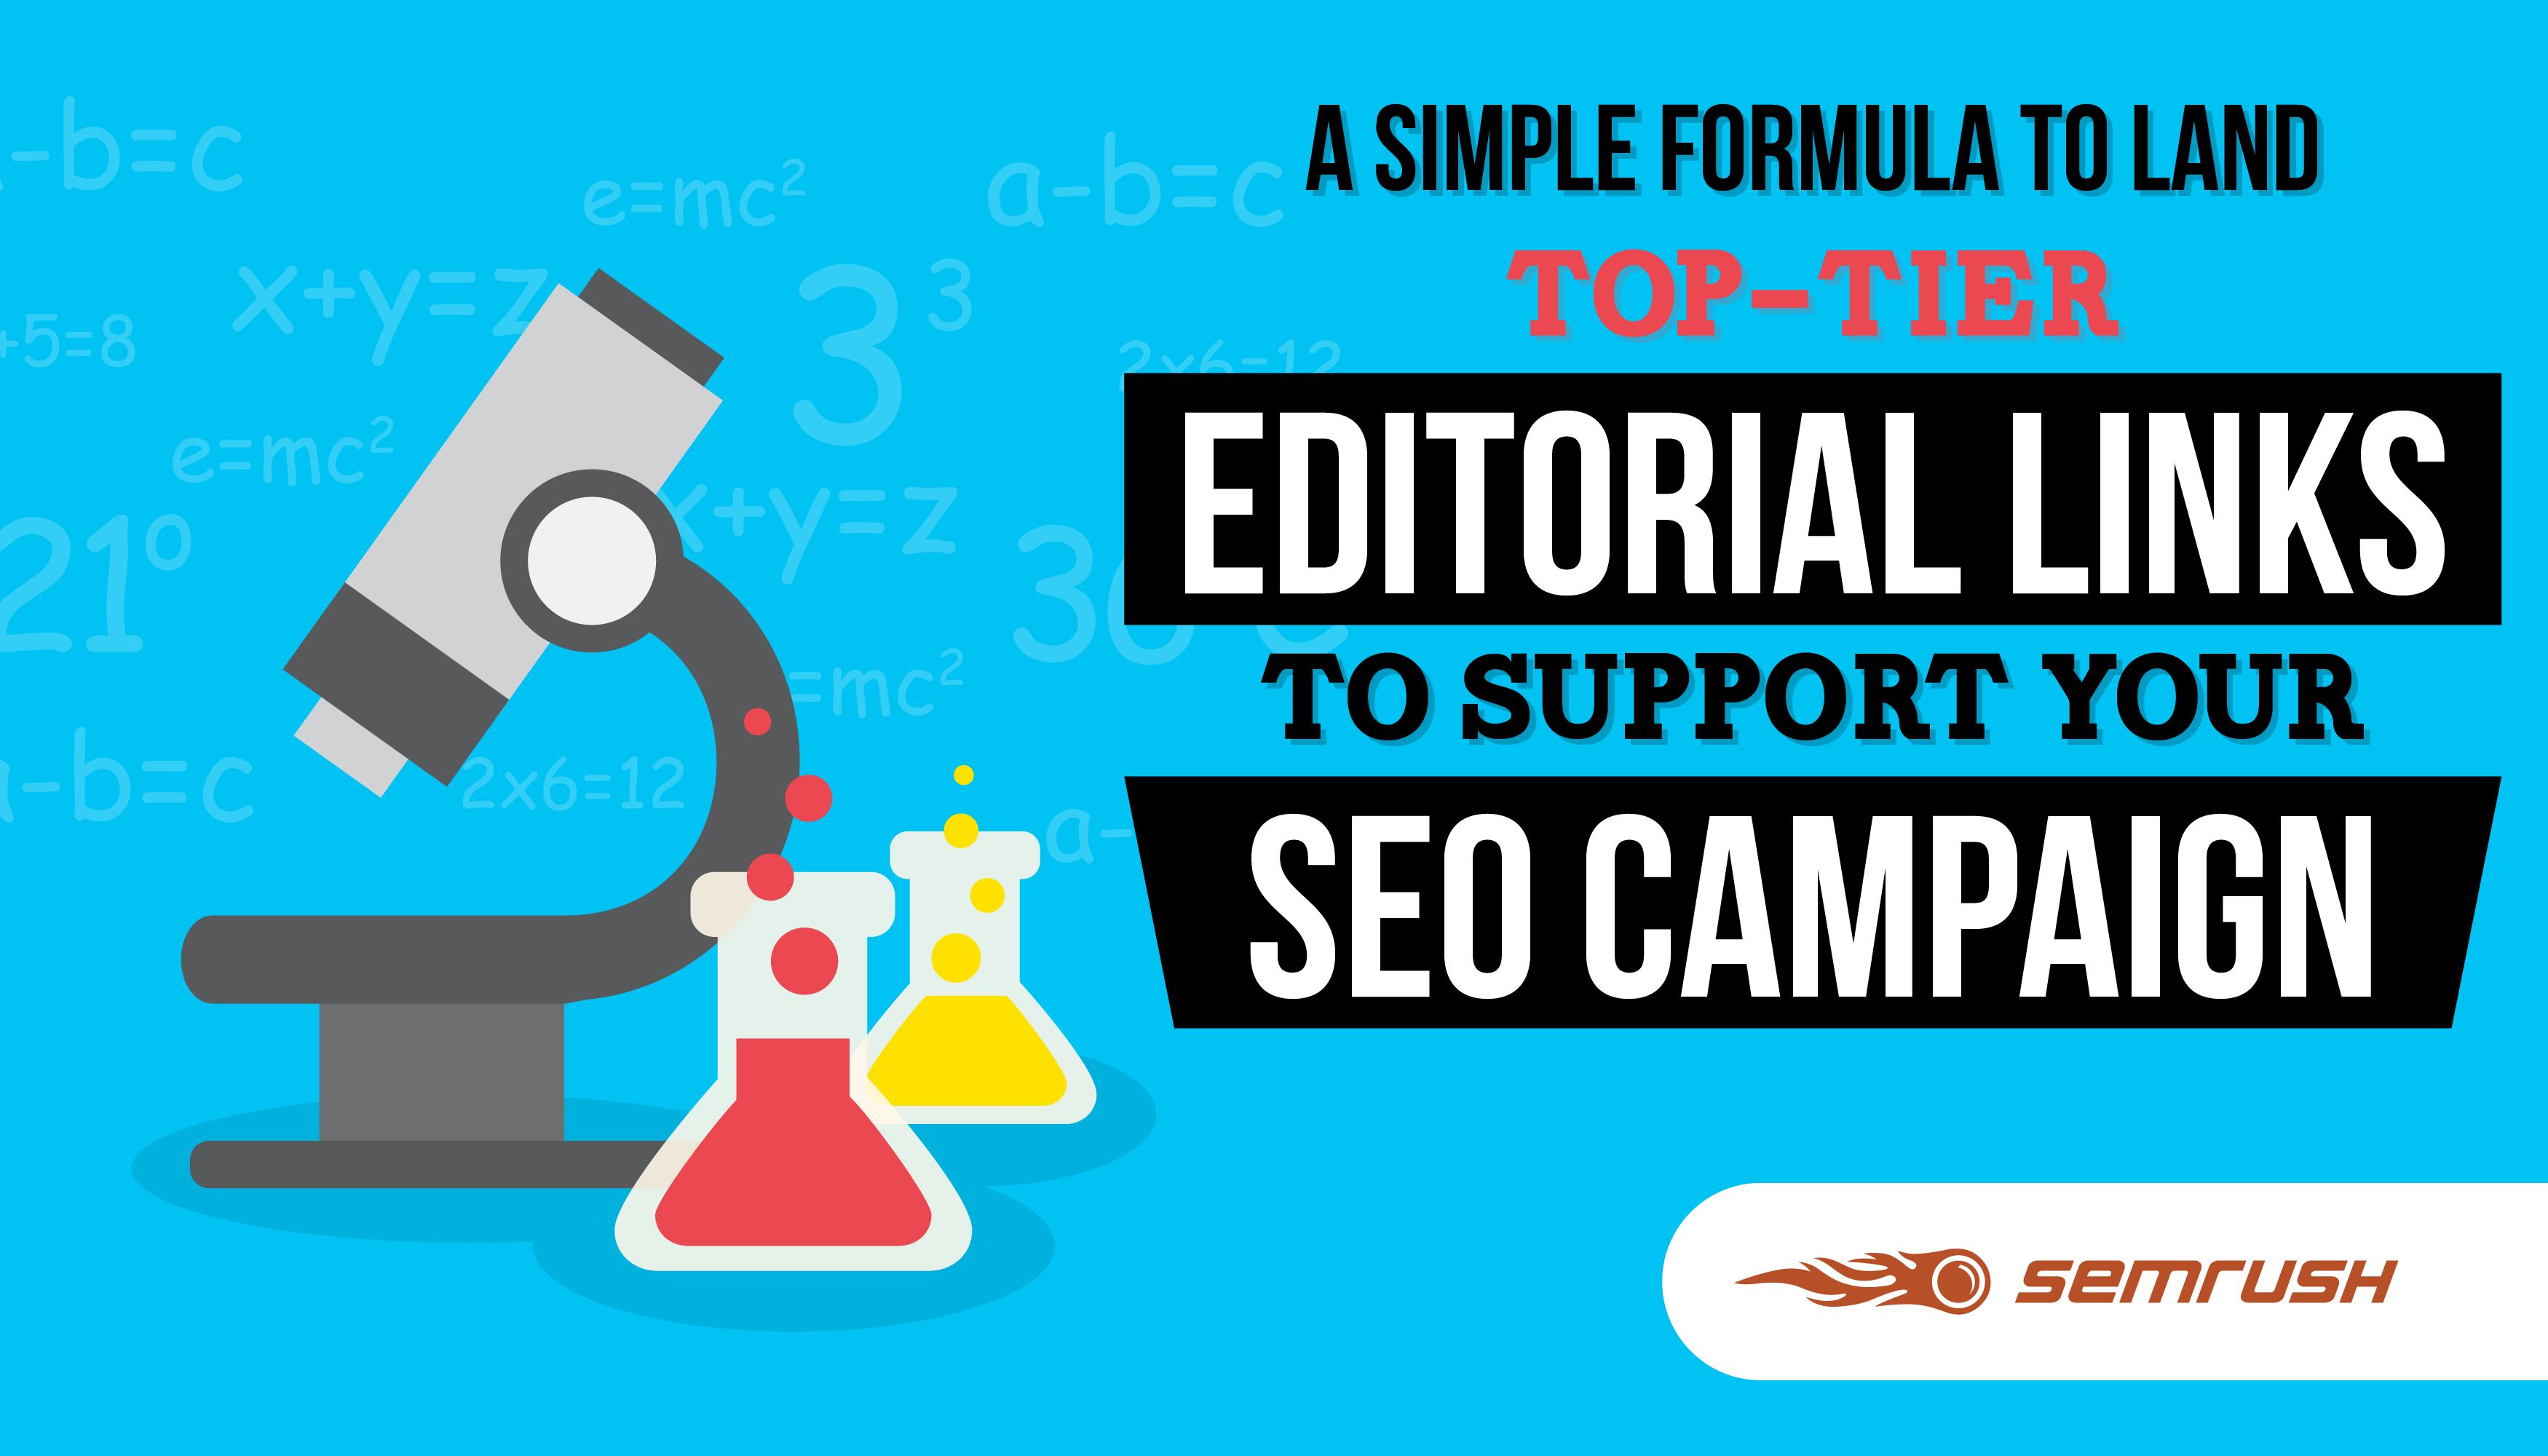 A Simple Formula To Land Top-Tier Links To Support Your SEO Campaign